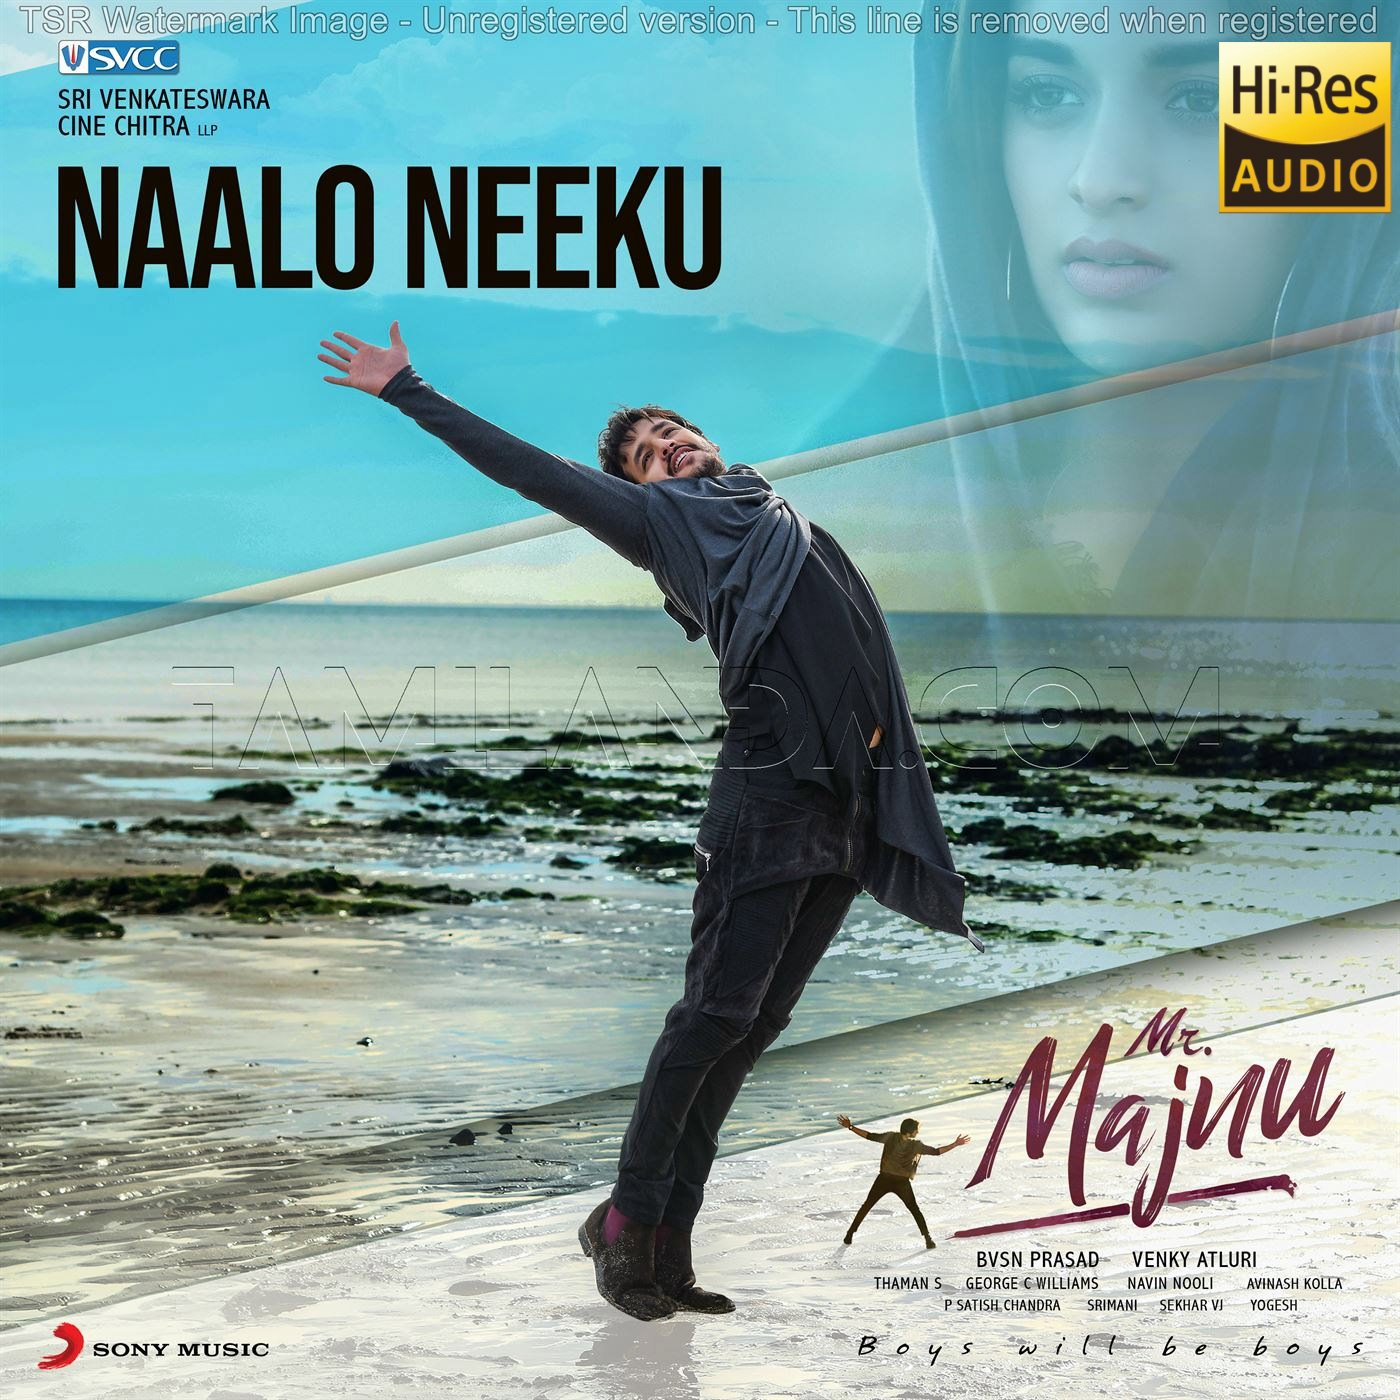 Naalo Neeku (From Mr. Majnu) – Single 24 BIT FLAC Song (2019)